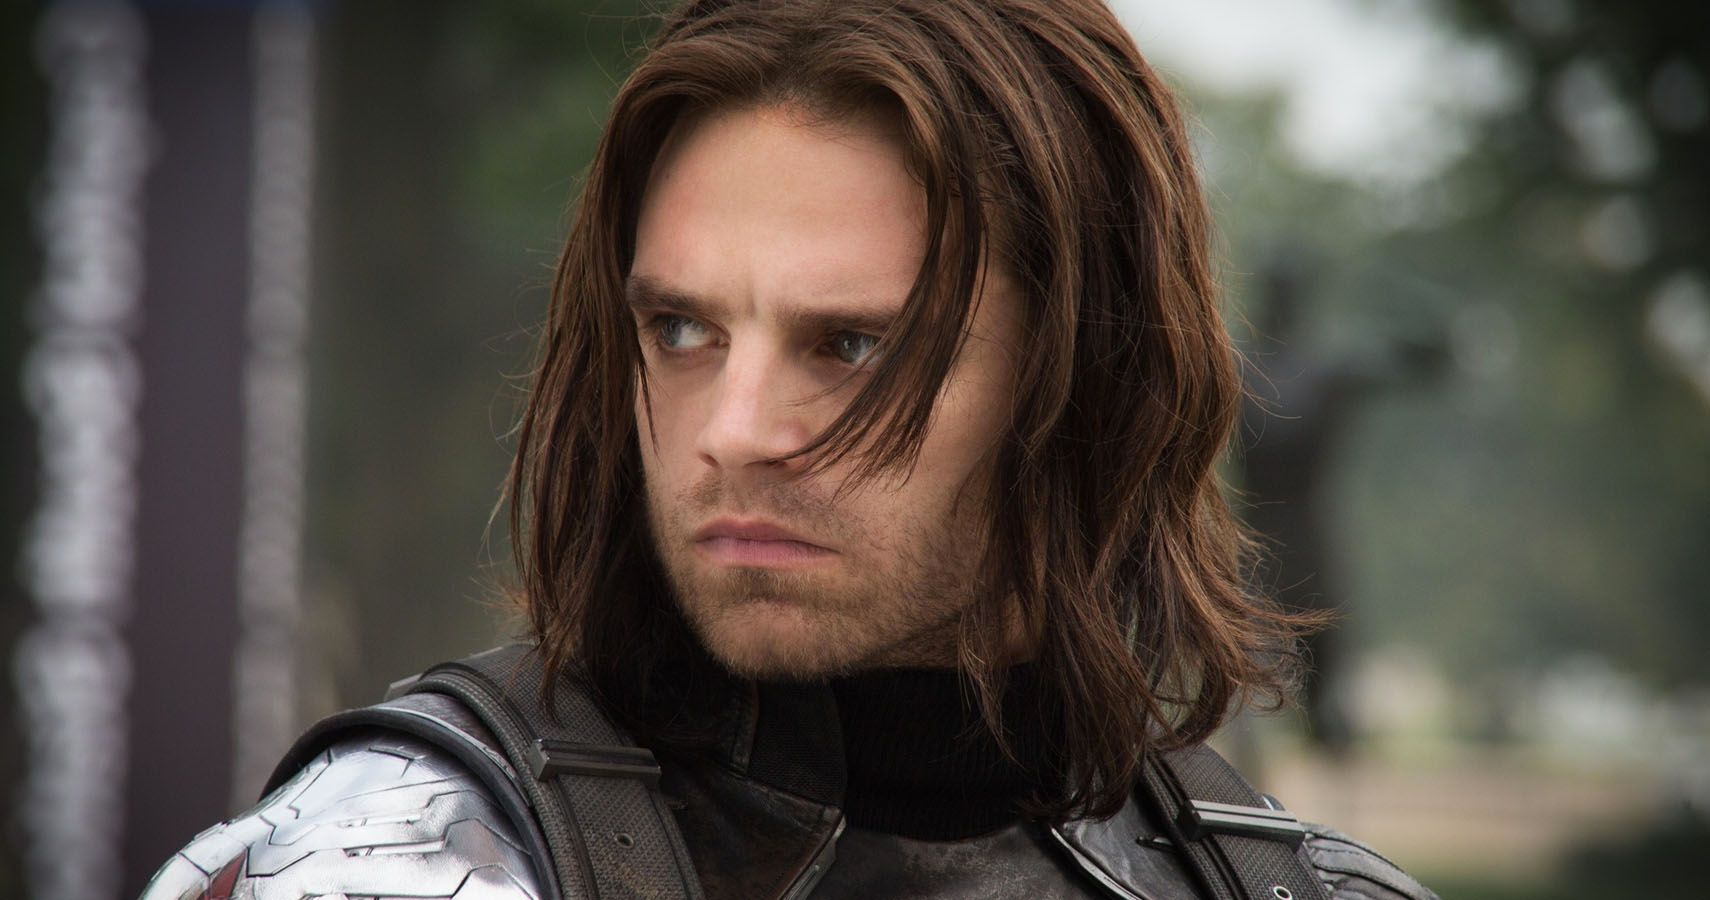 The 10 Biggest Ways Bucky Barnes Changed Throughout The MCU